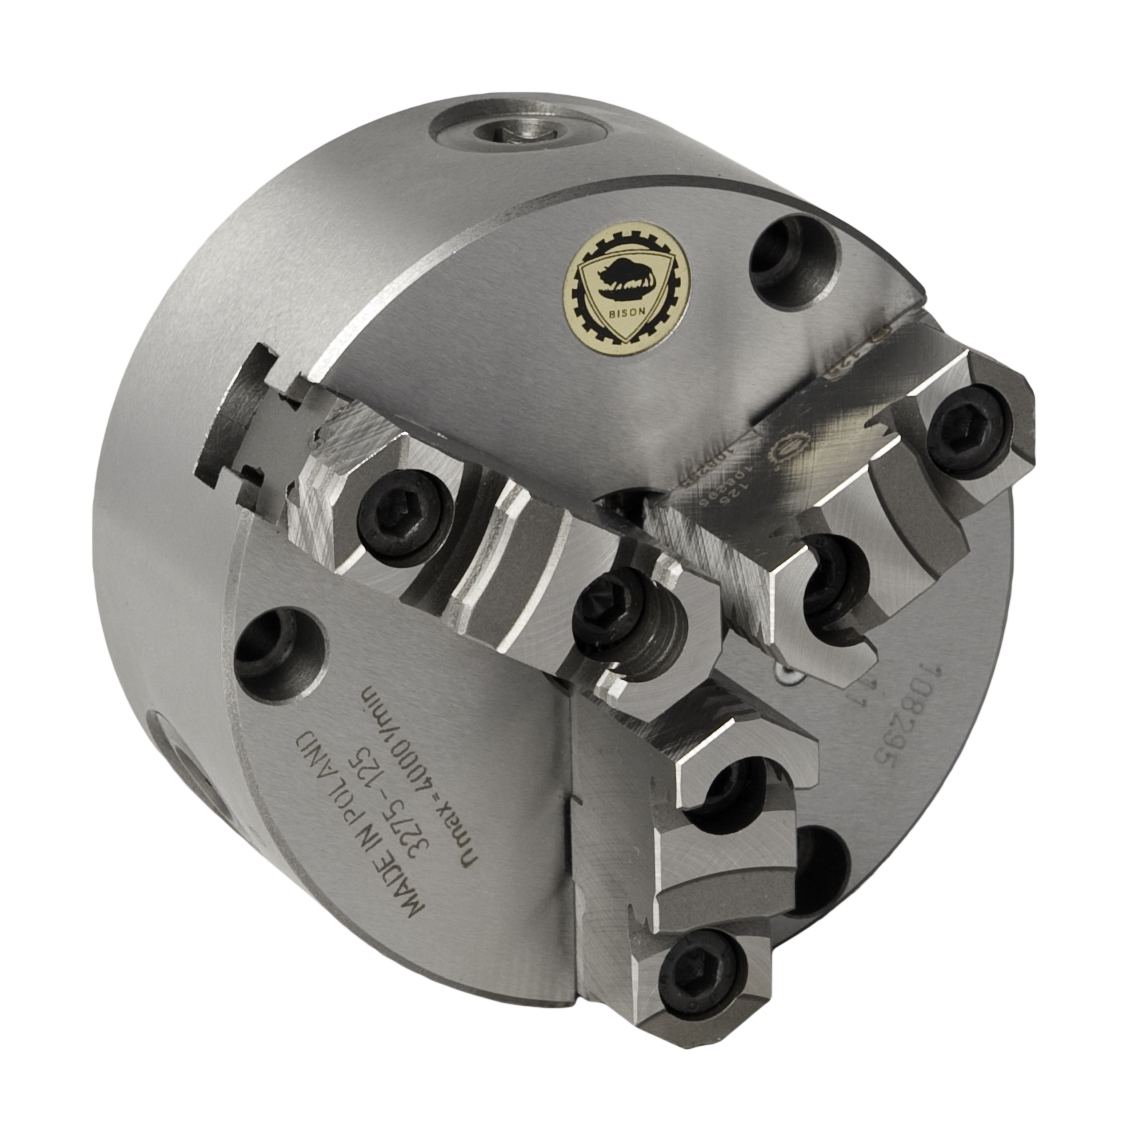 Bison 3275 3-Jaw Cast Iron Self-Centring Flexible (Front/Rear) Mounting Scroll Chuck.